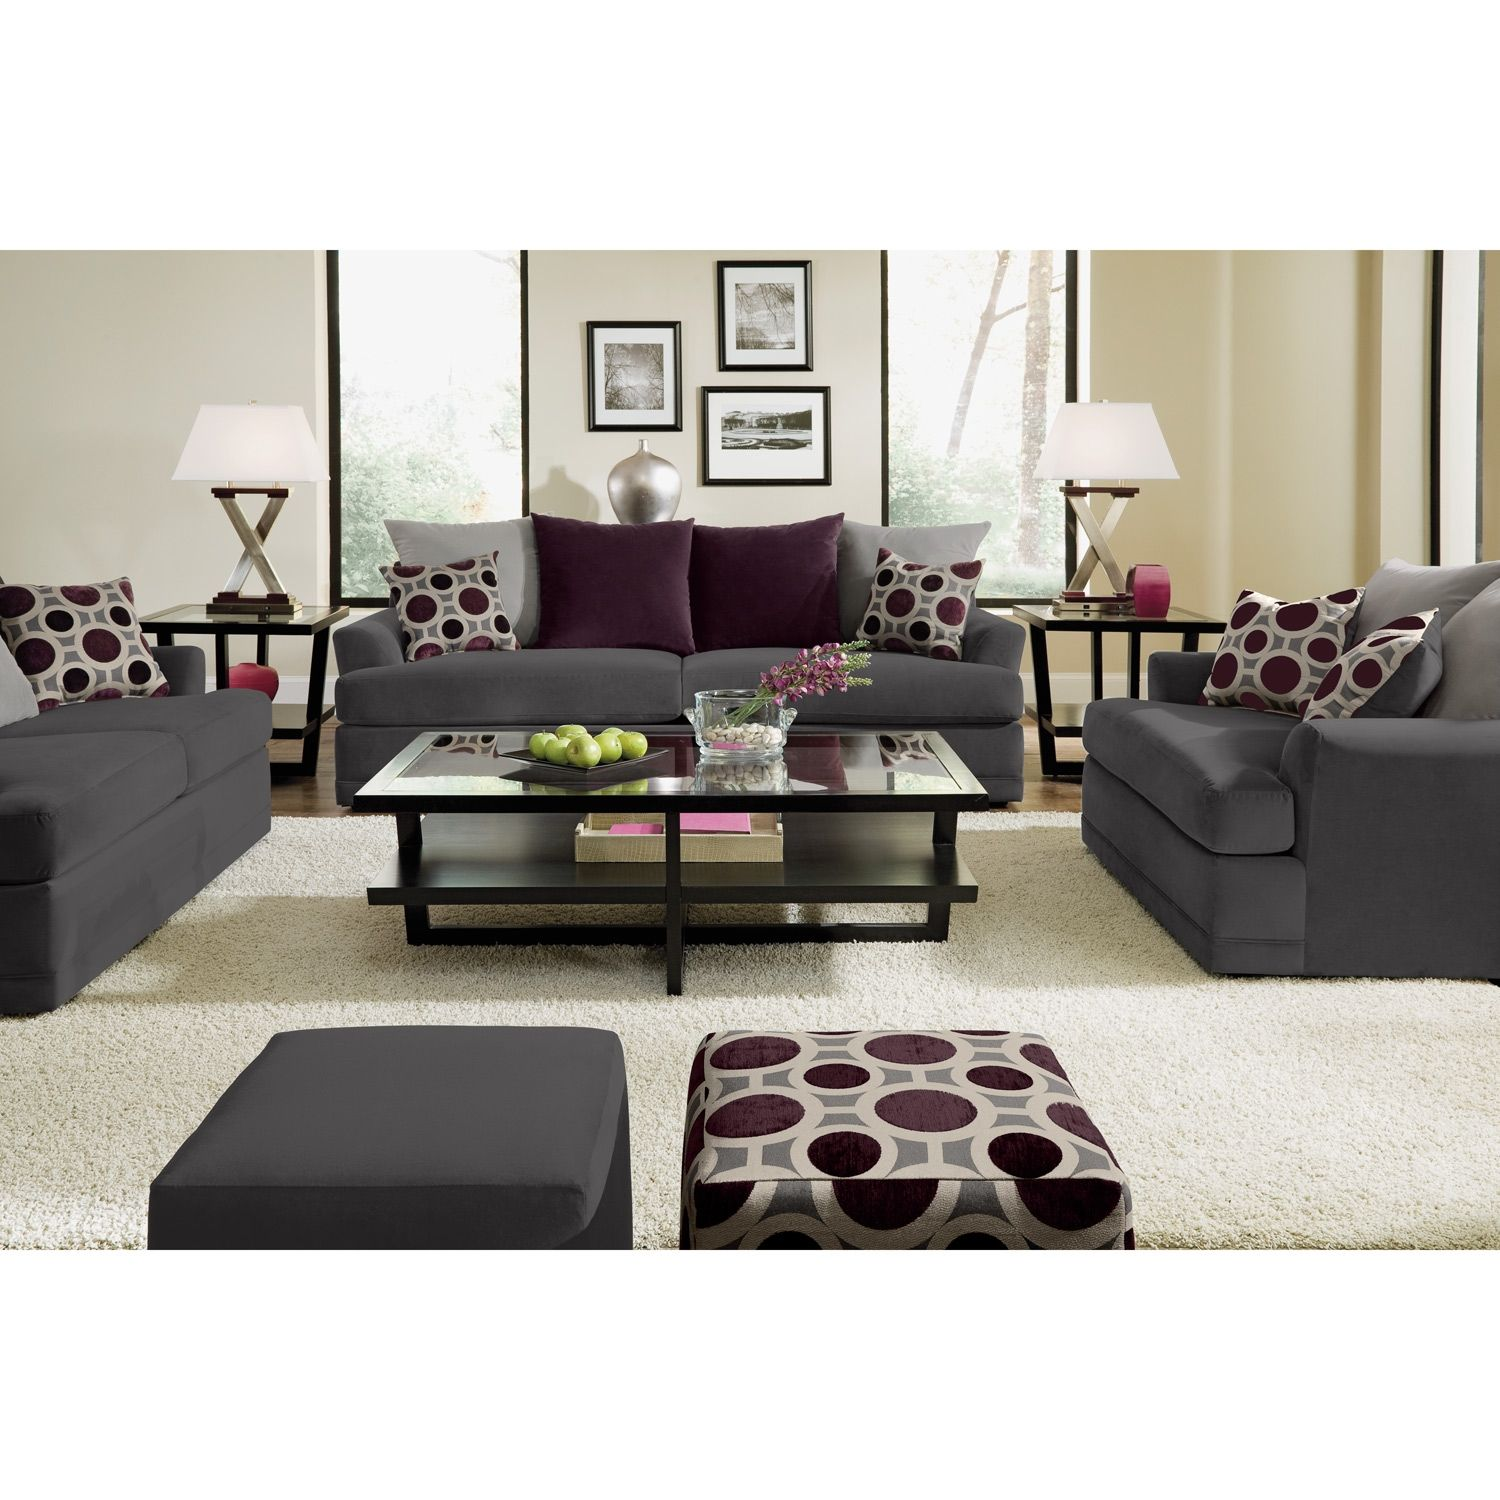 American Signature Furniture   Radiance Upholstery Sofa. Value City ...